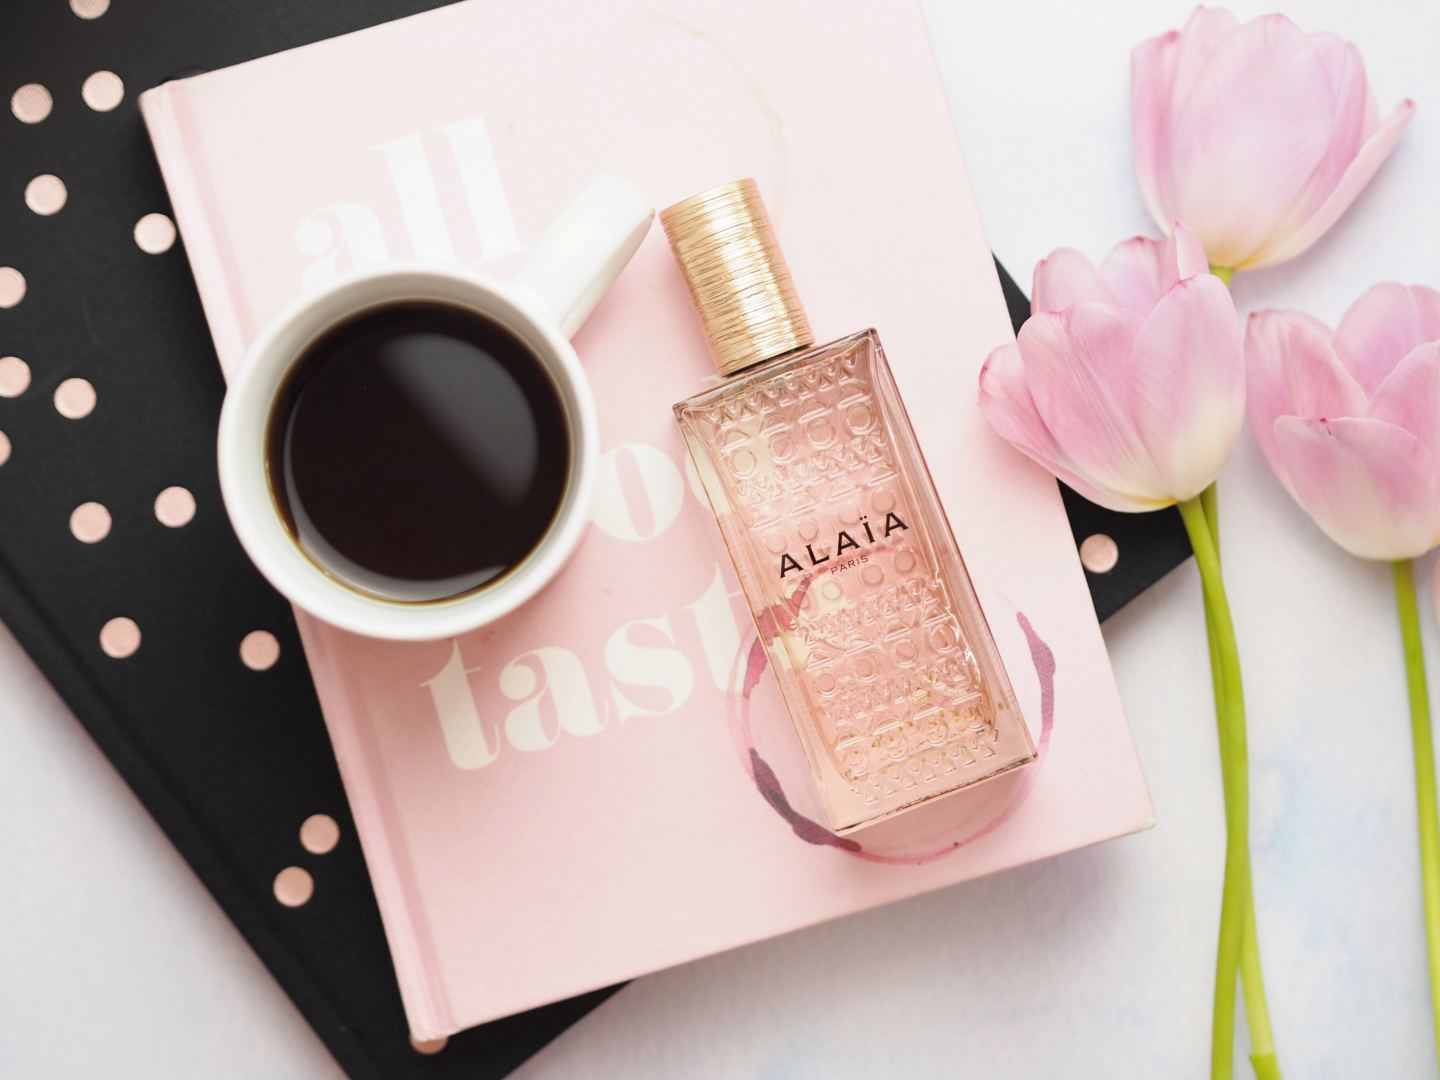 Alaïa 'Nude' perfume review fragrance new 2018